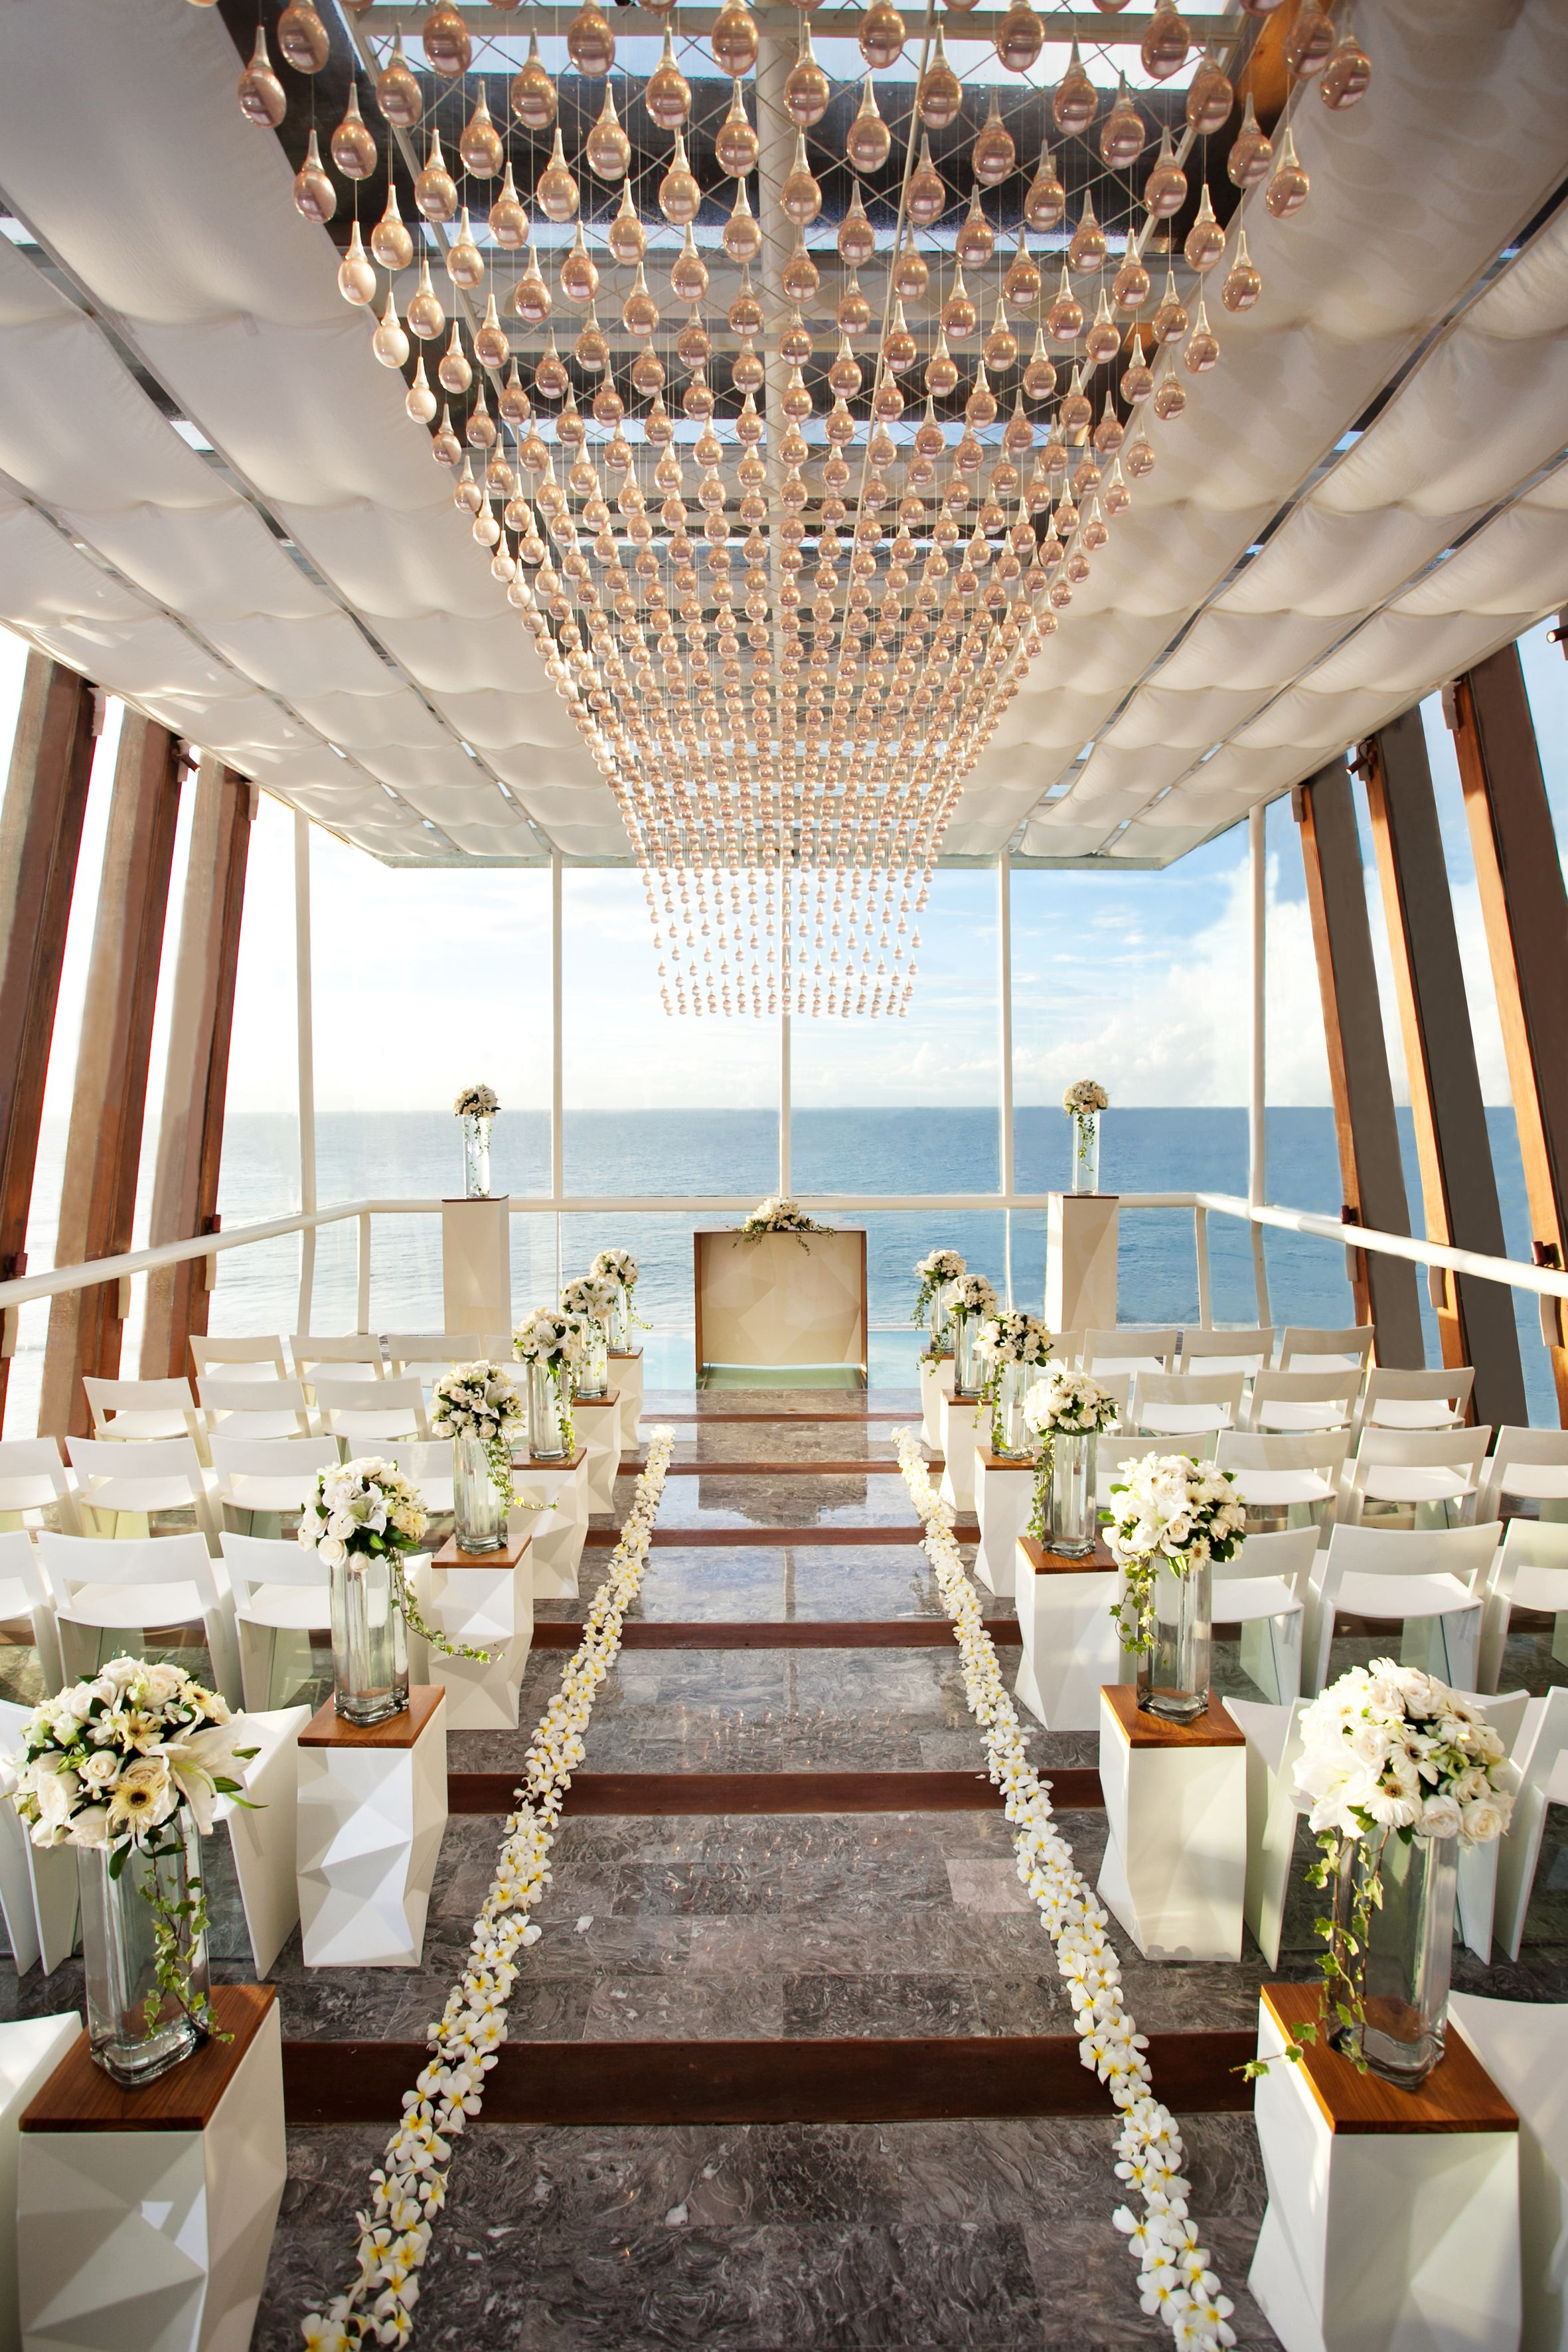 Wedding decoration inspirations beach view at anantara bali wedding decoration inspirations beach view at anantara bali uluwatu resort junglespirit Choice Image